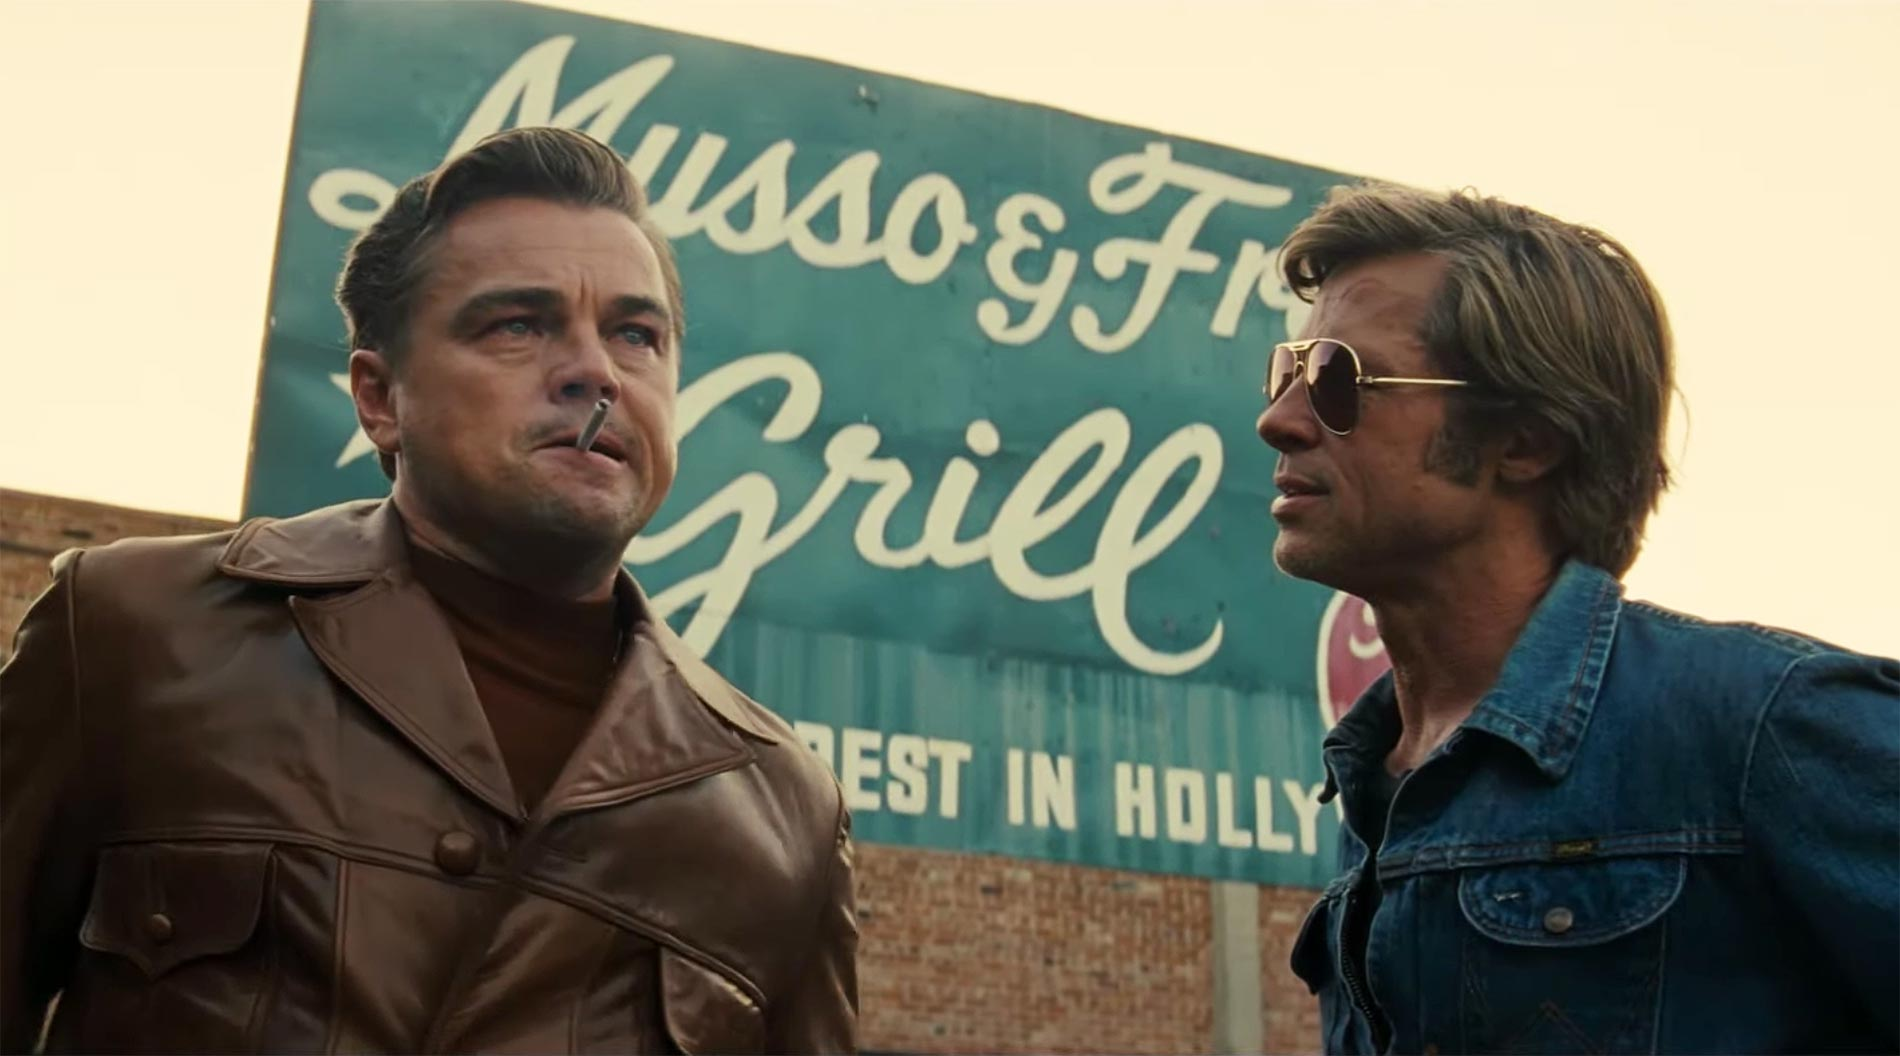 Cineplex Reveals Limited 70mm Engagement for Tarantino's Once Upon a Time in Hollywood